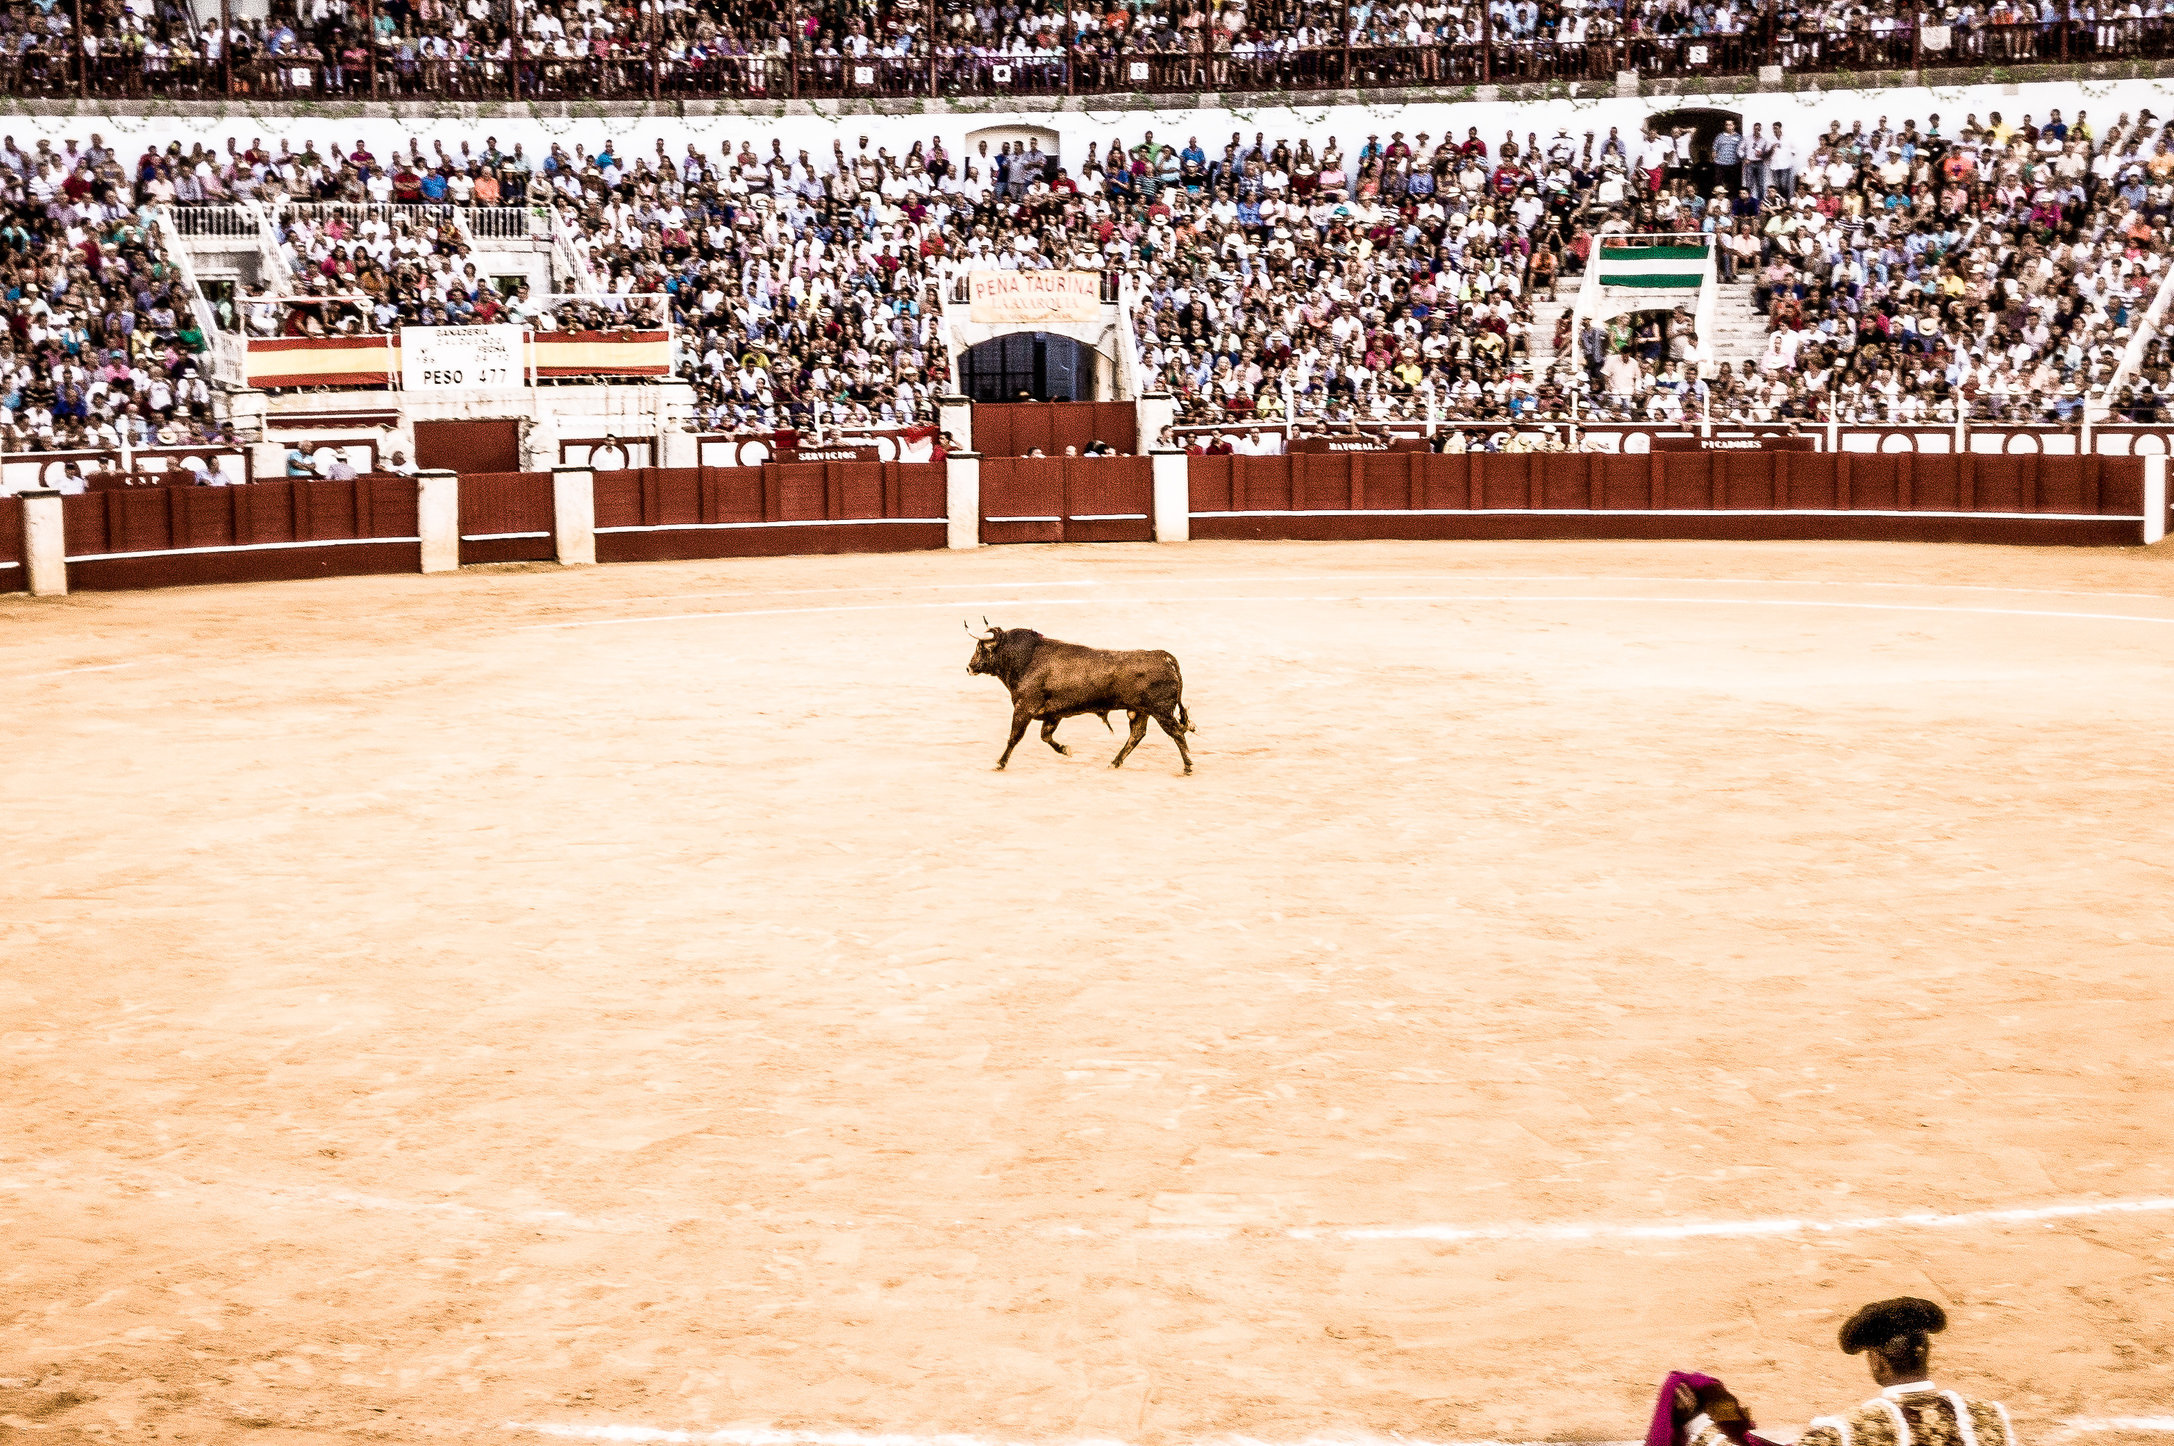 The Bullfight-187-bewerkt.jpg